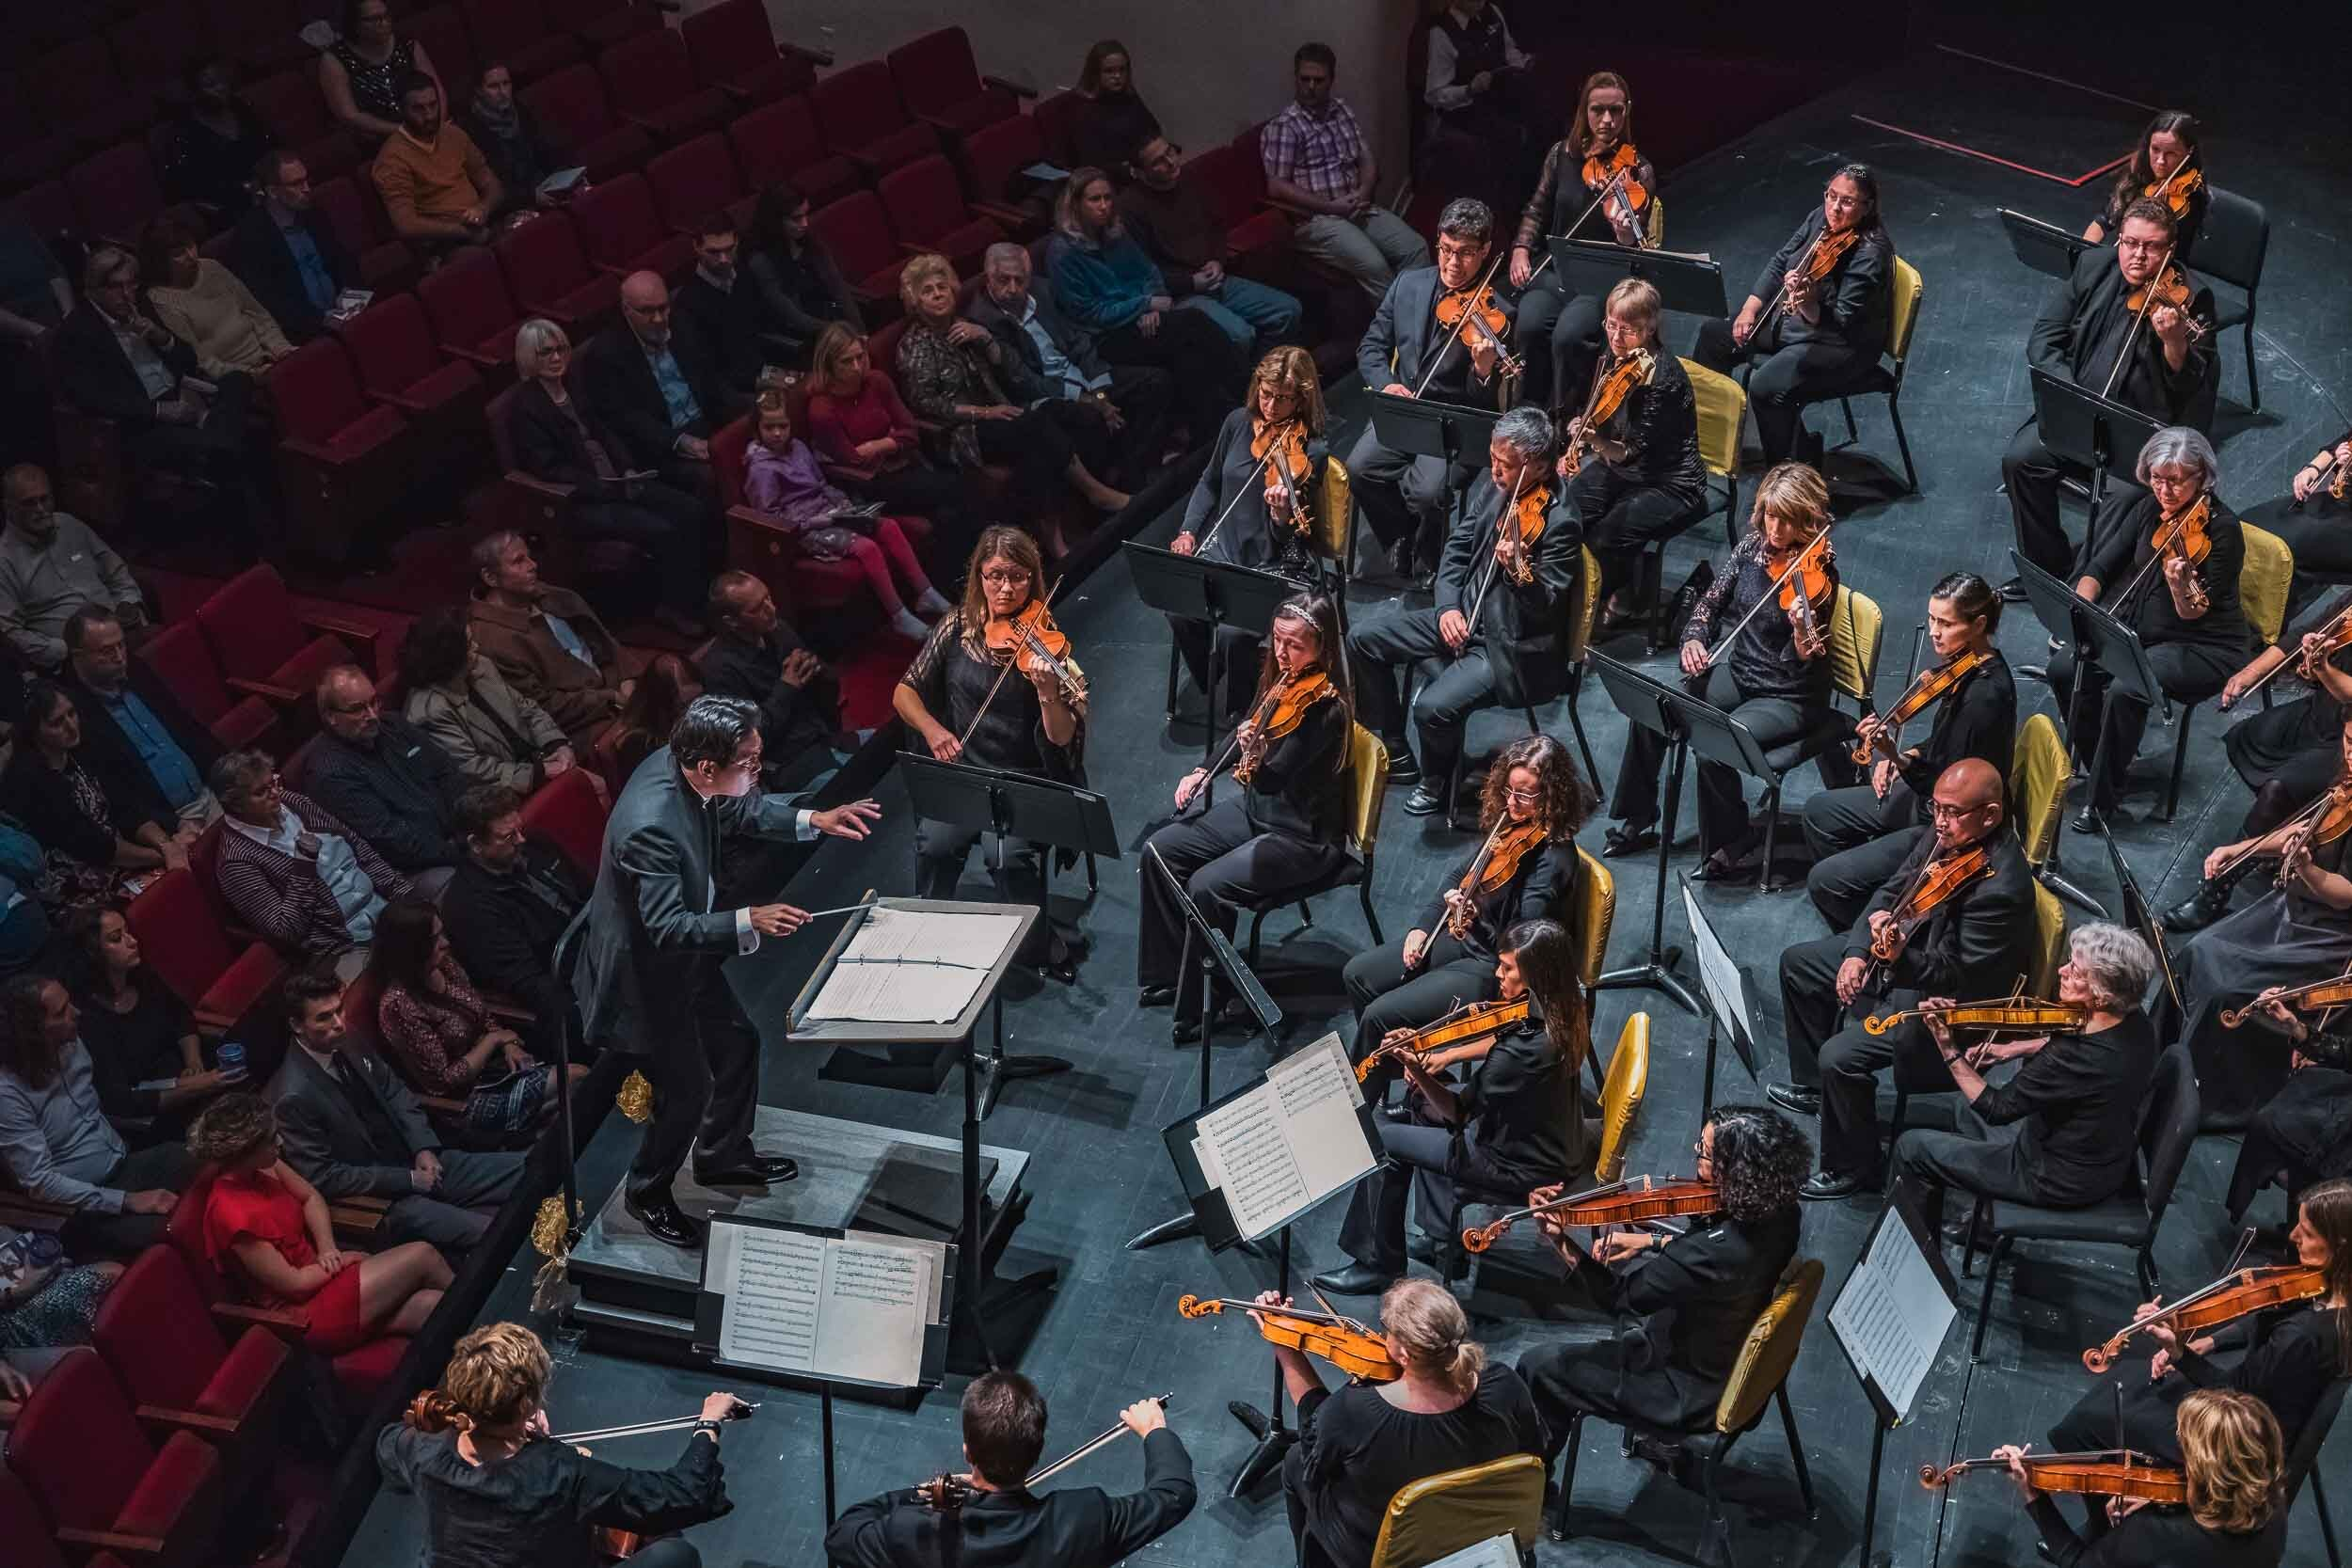 fox-valley-symphony-orchestra-business-commercial-professional-photographer-graham-images-washatka-wisconsin-appleton-green-bay-004-5706-blog.jpg